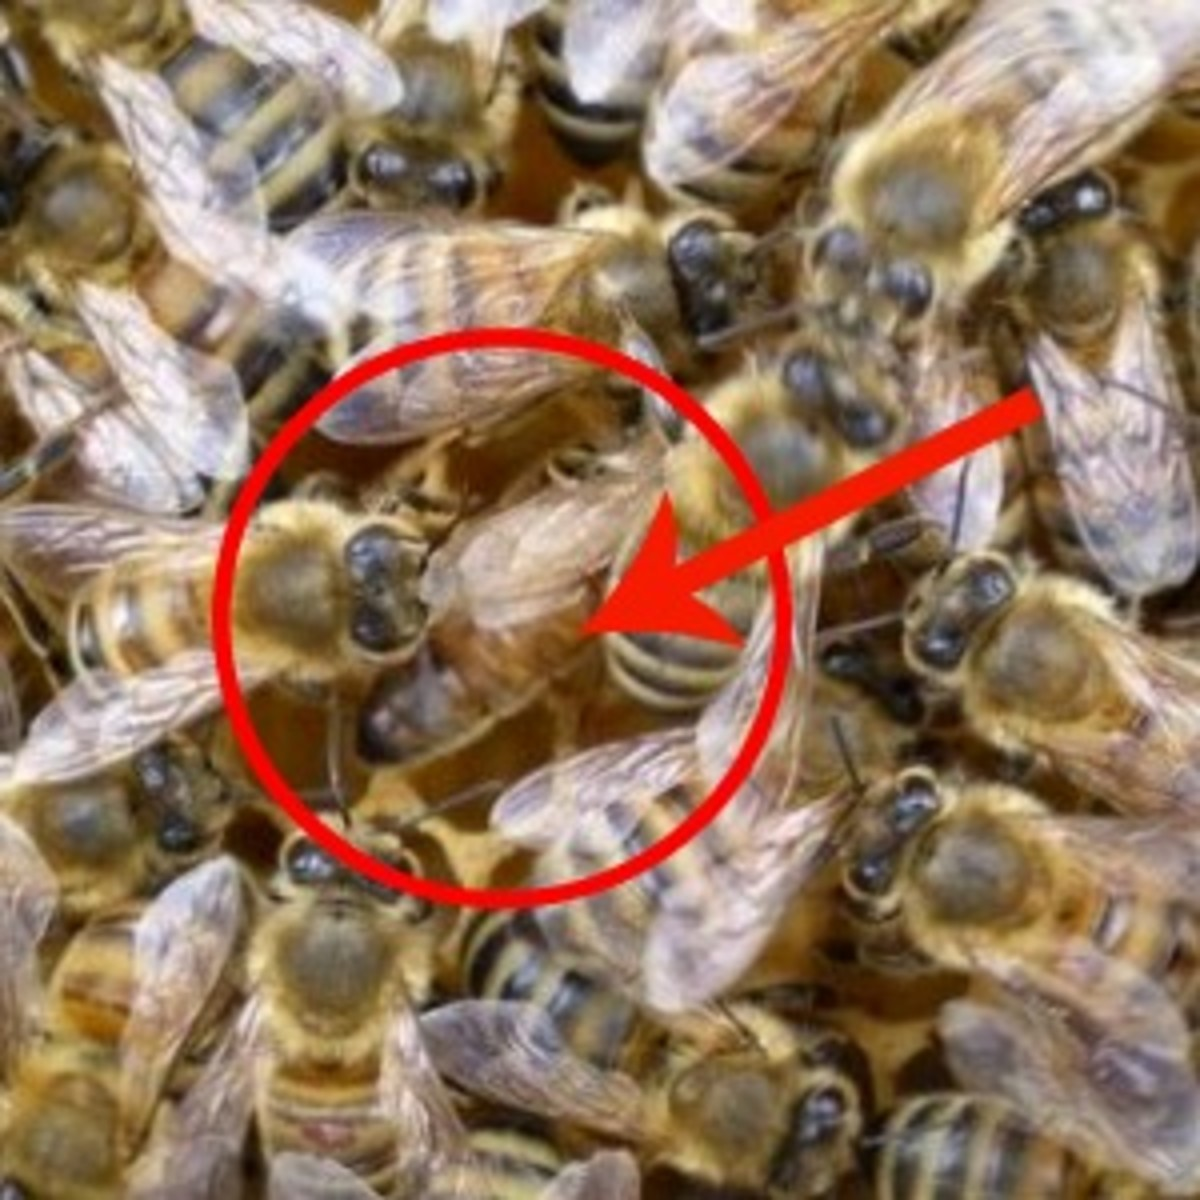 The queen is the bee with a long smooth abdomen, almost hidden by her attendant worker bees...